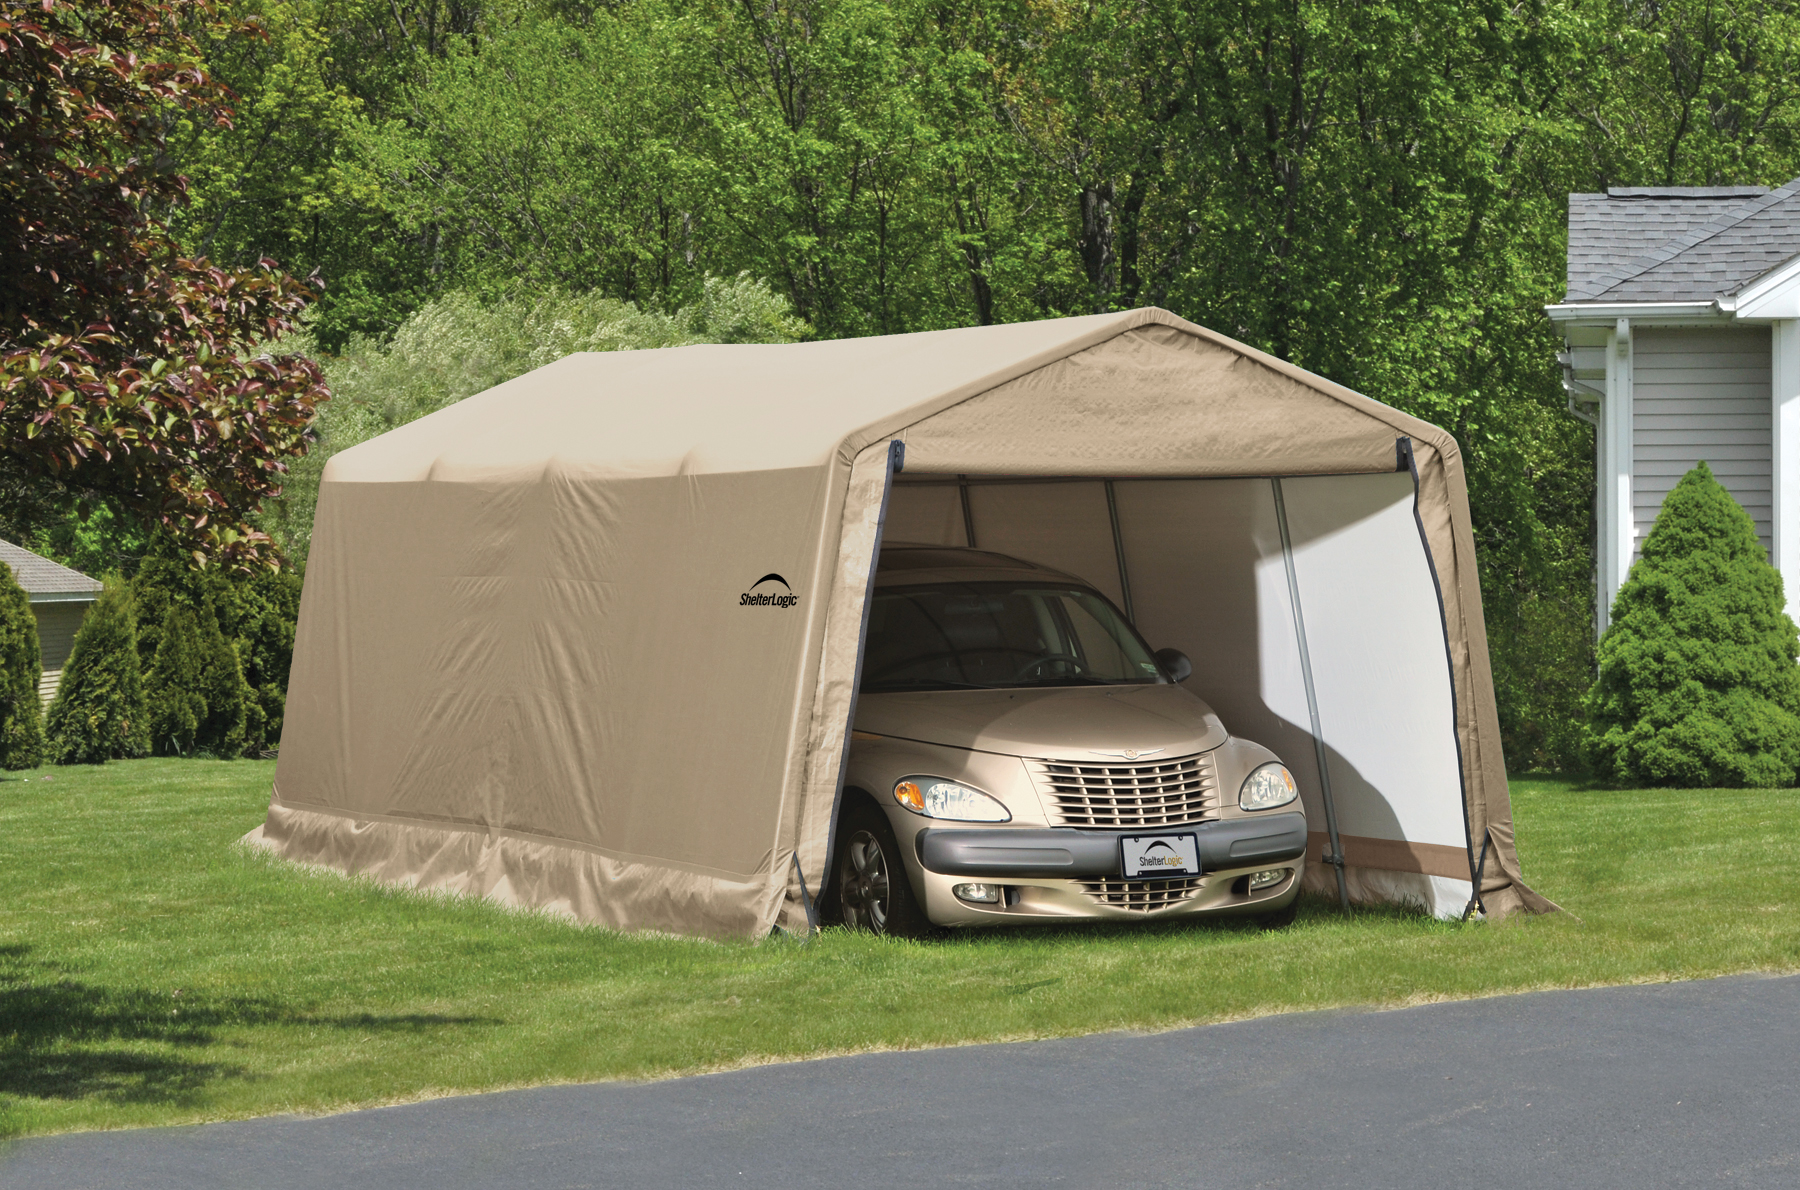 shelterlogic portable car garage shelters. Black Bedroom Furniture Sets. Home Design Ideas